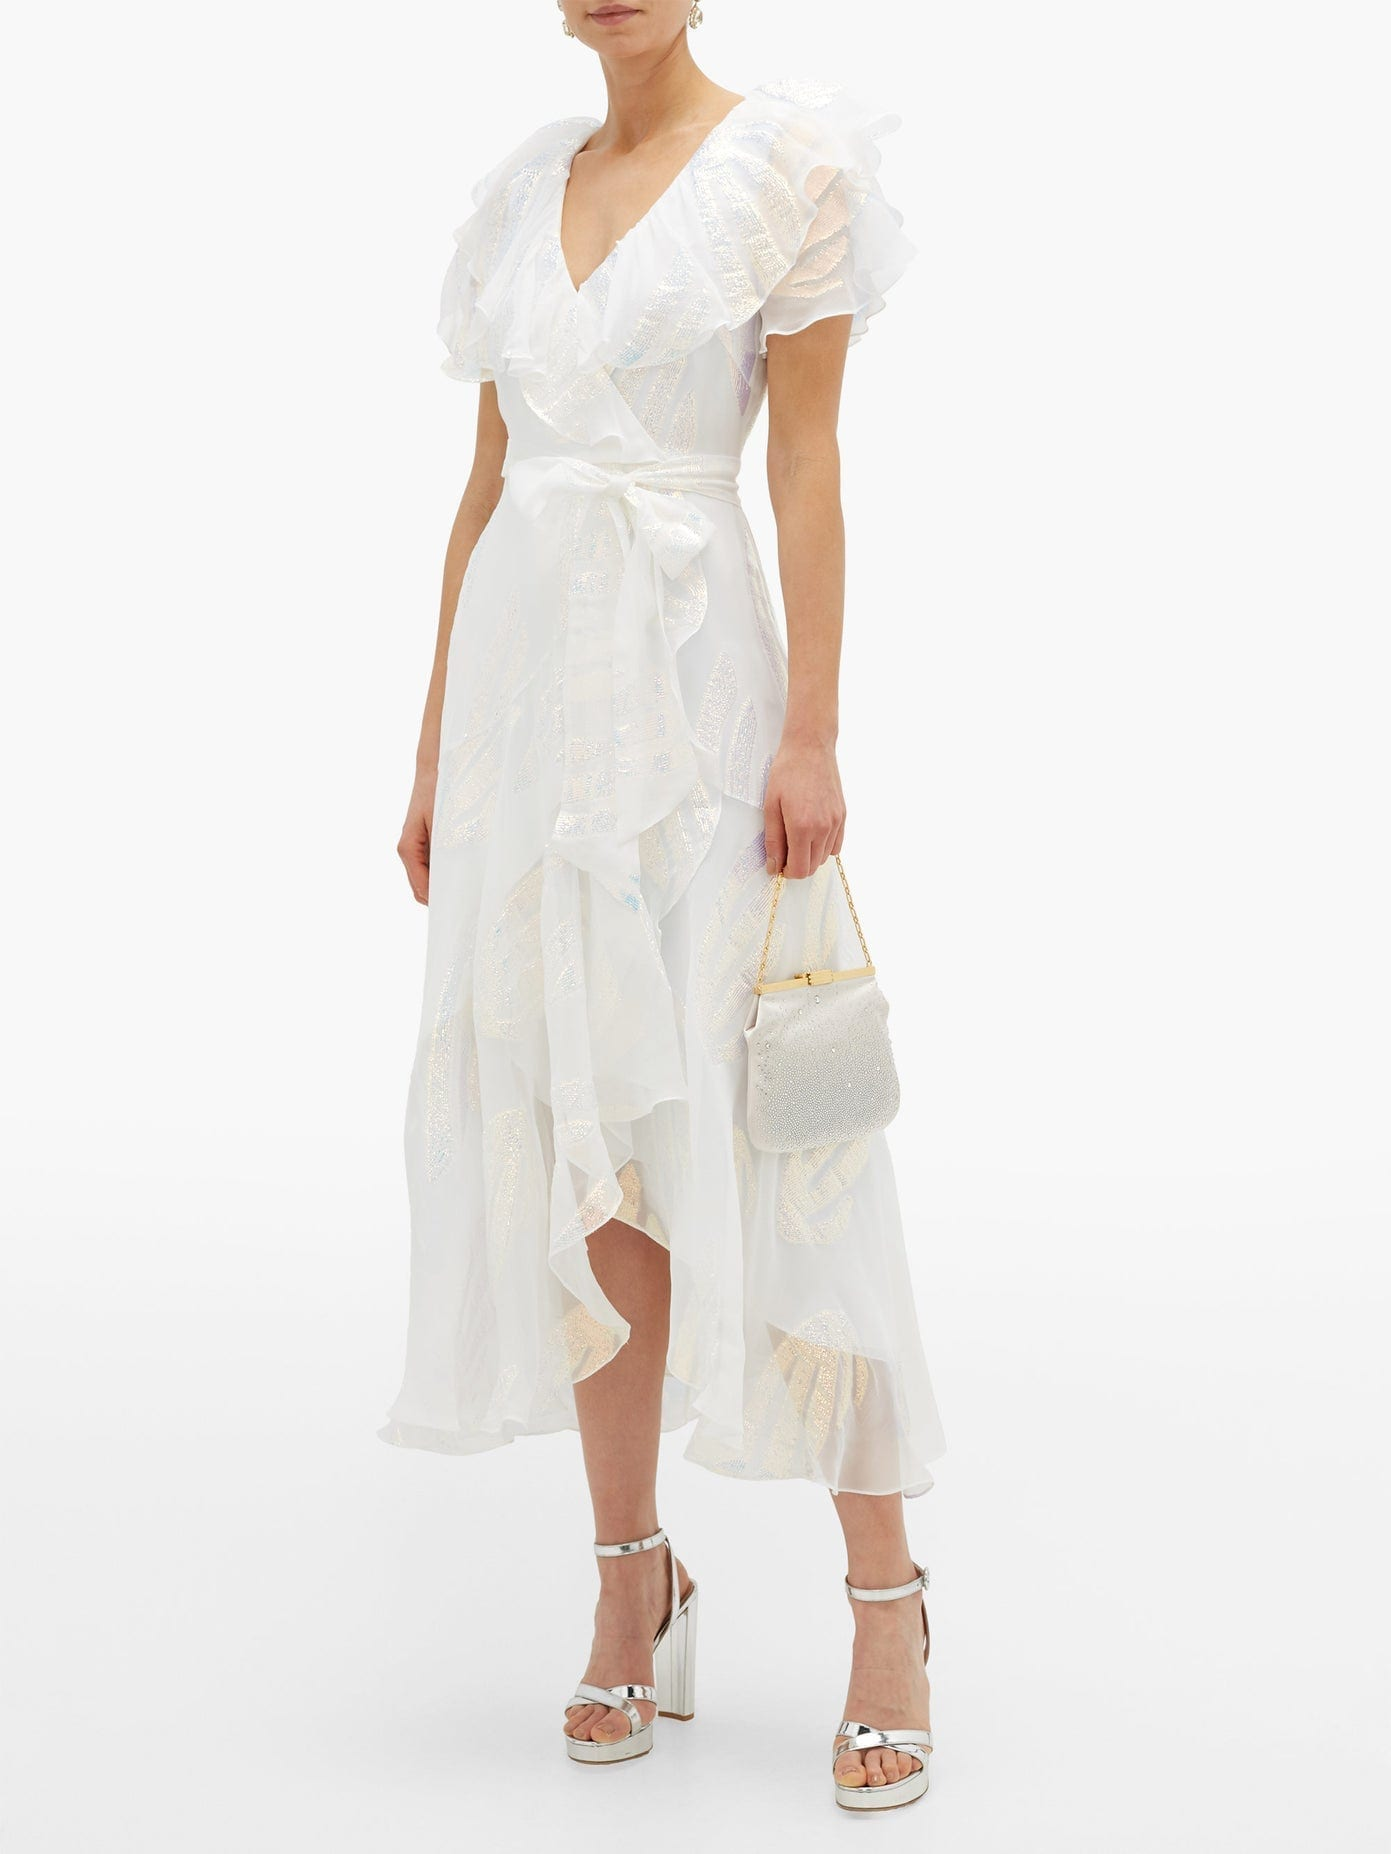 TEMPERLEY LONDON Clarisse Ruffled Metallic-jacquard Chiffon Dress